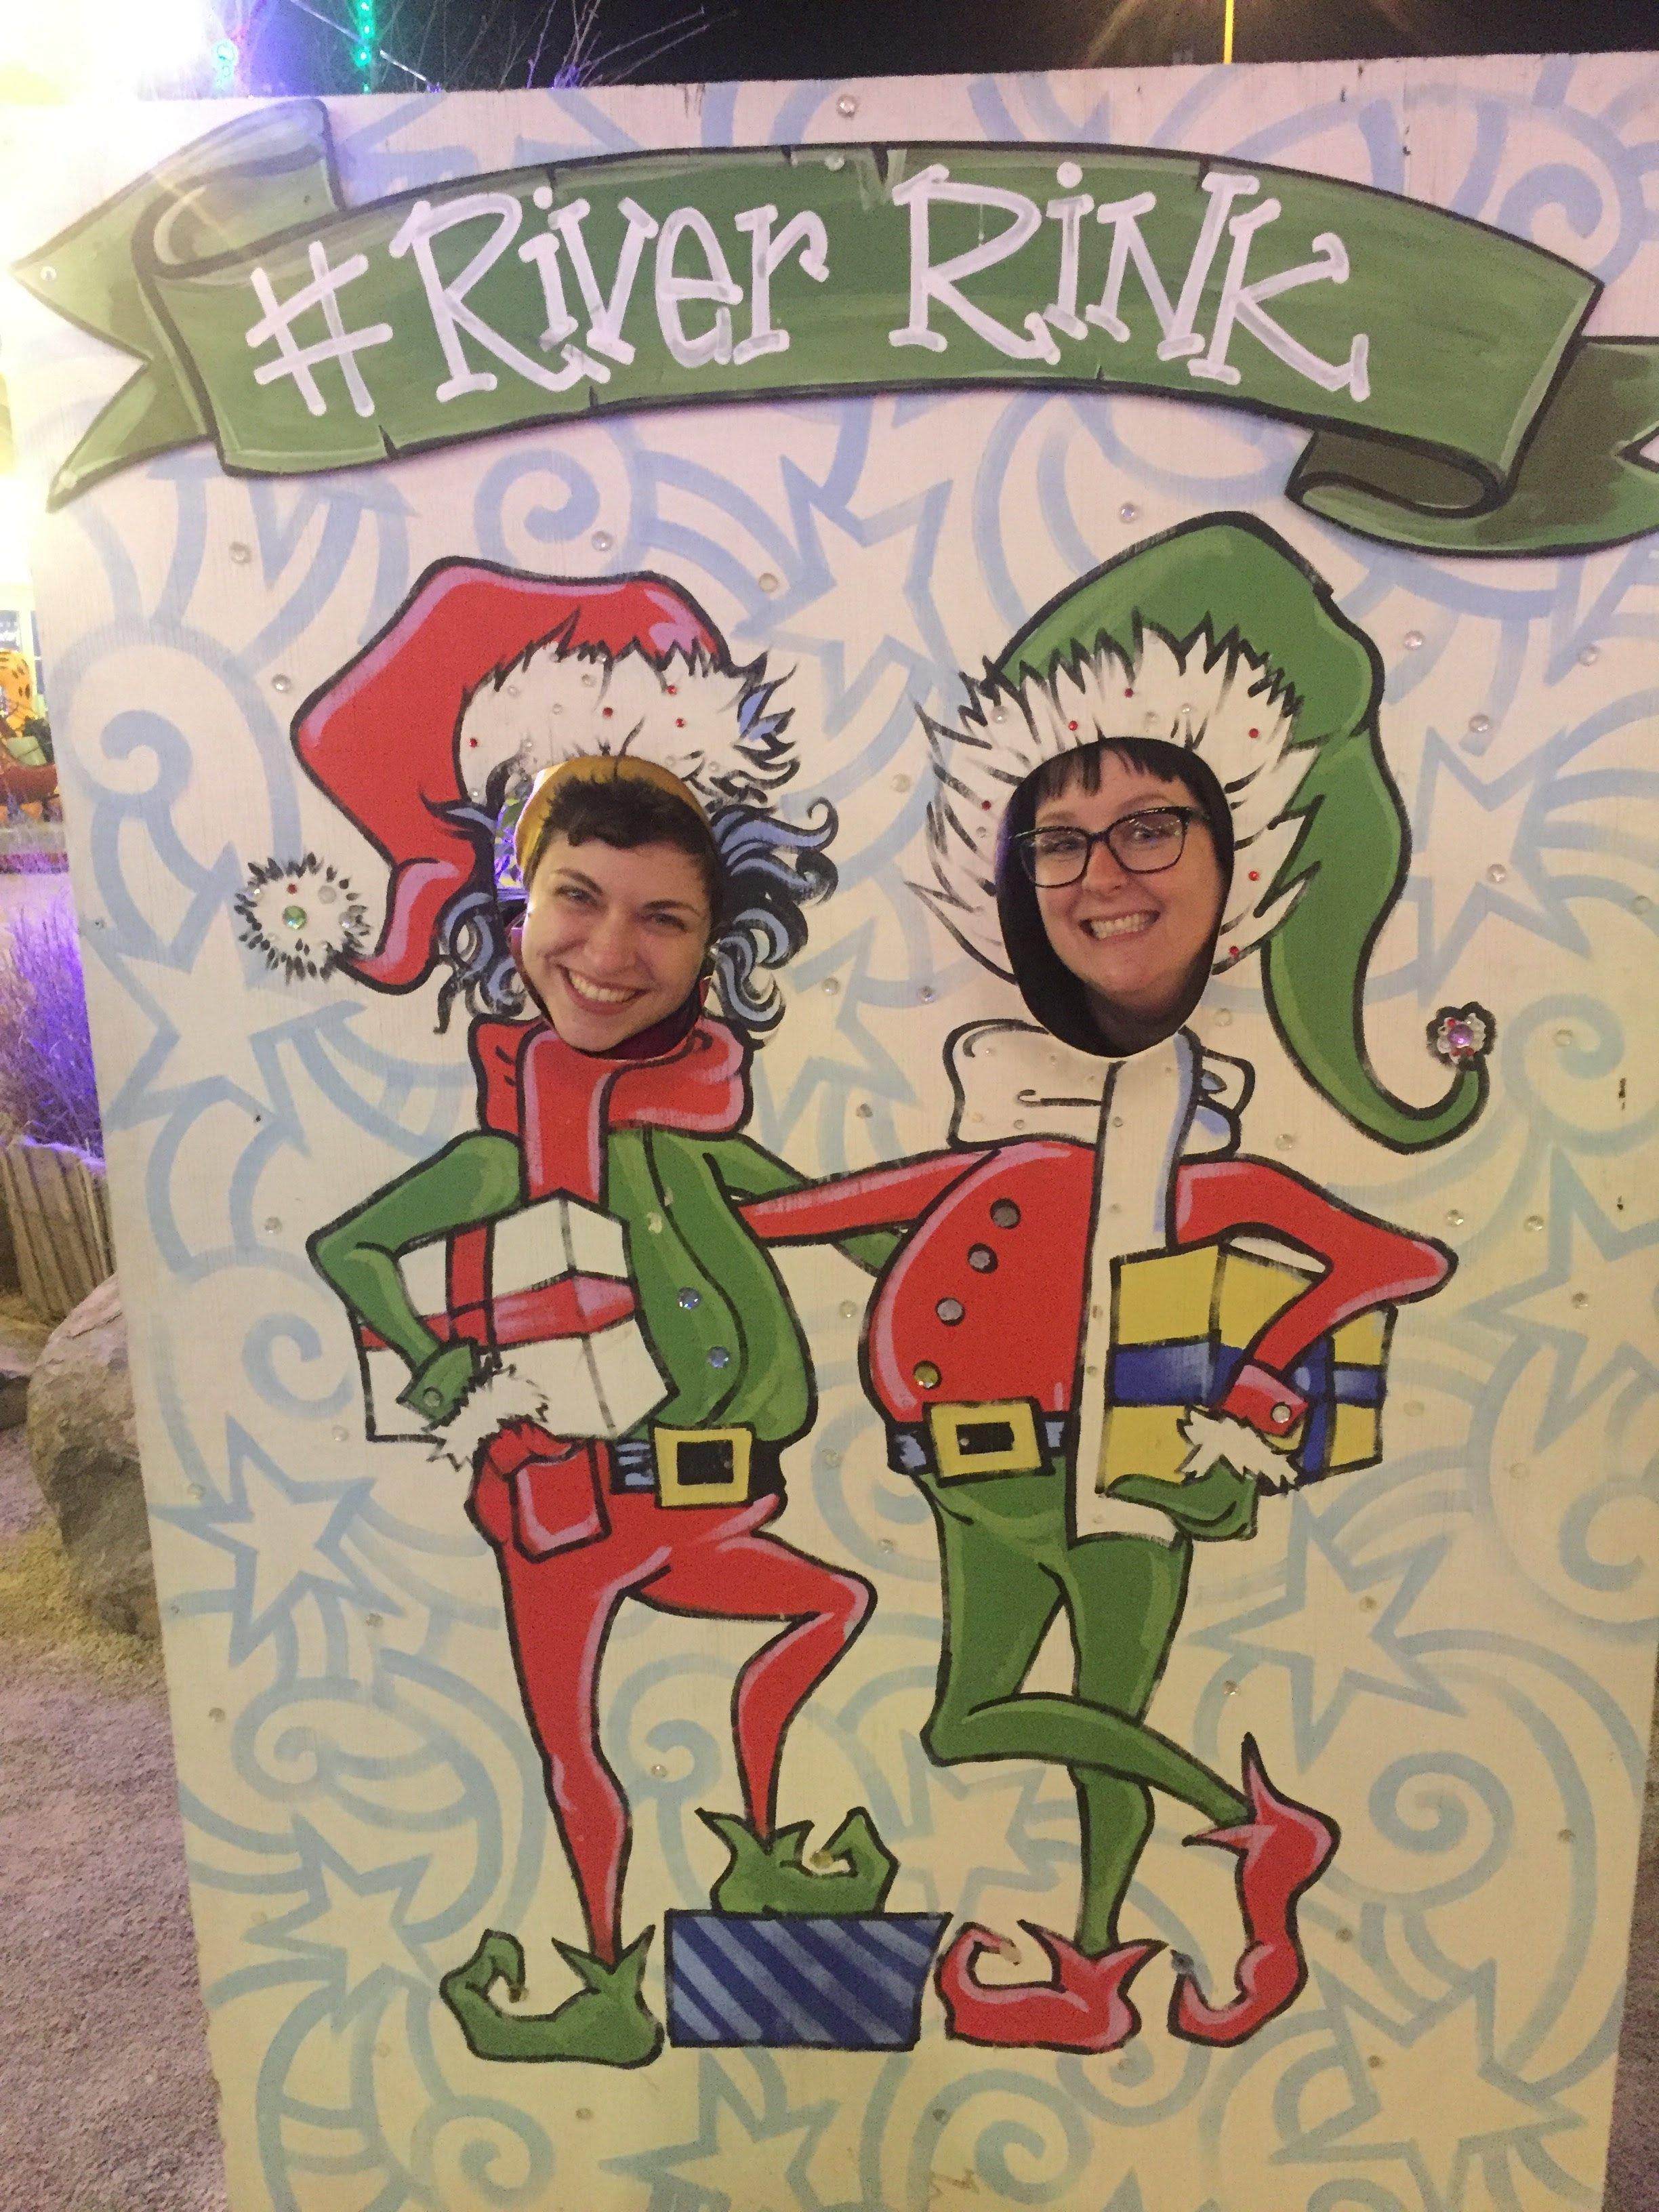 Two people in a holiday themed face in hole.